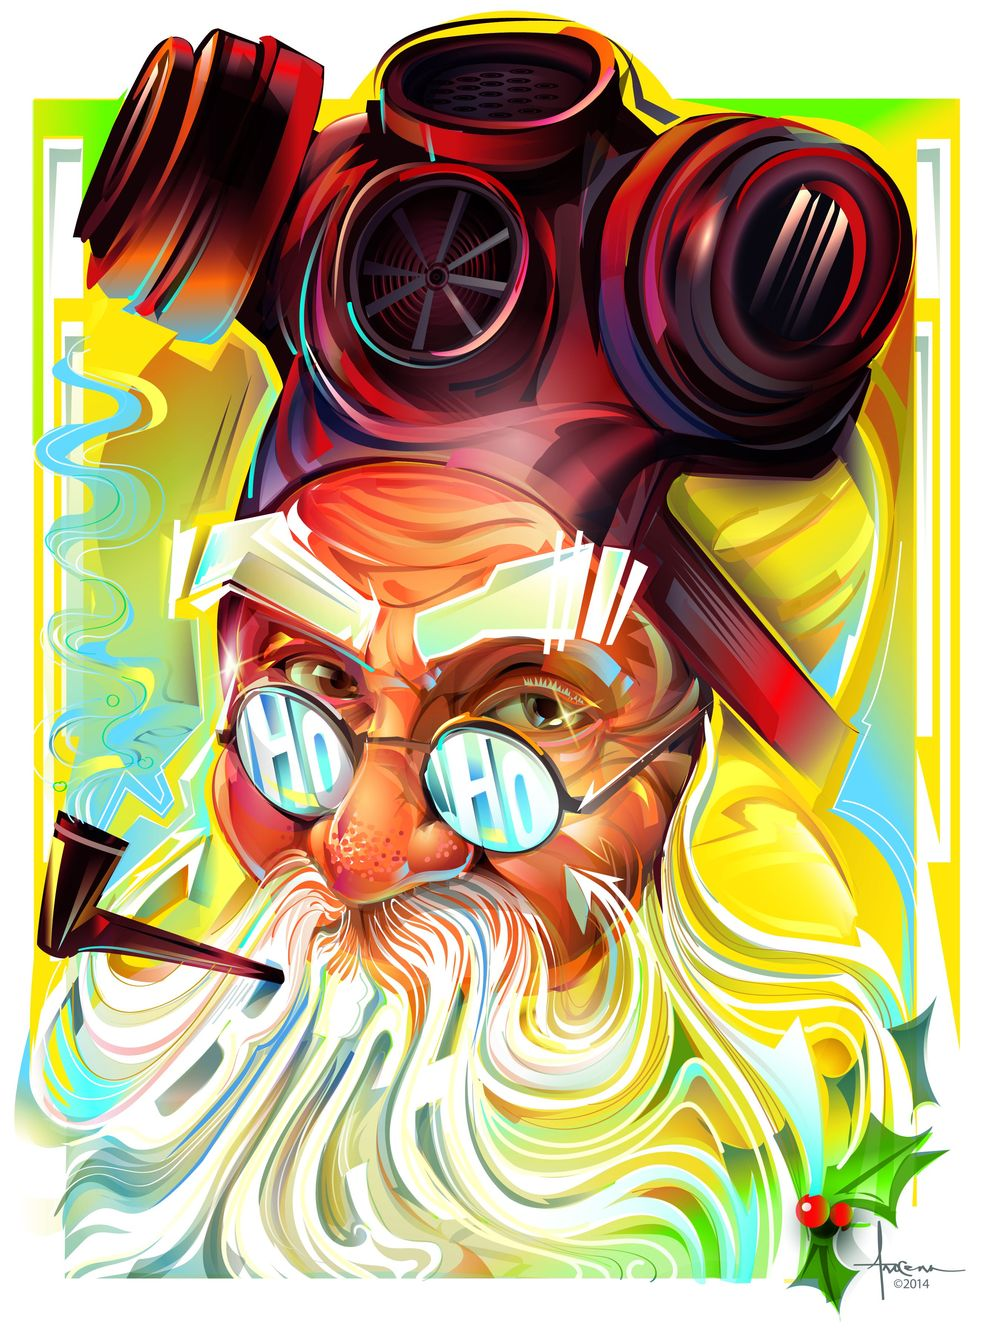 orlando-arocena-vector-shortlist-breakingbad-4c